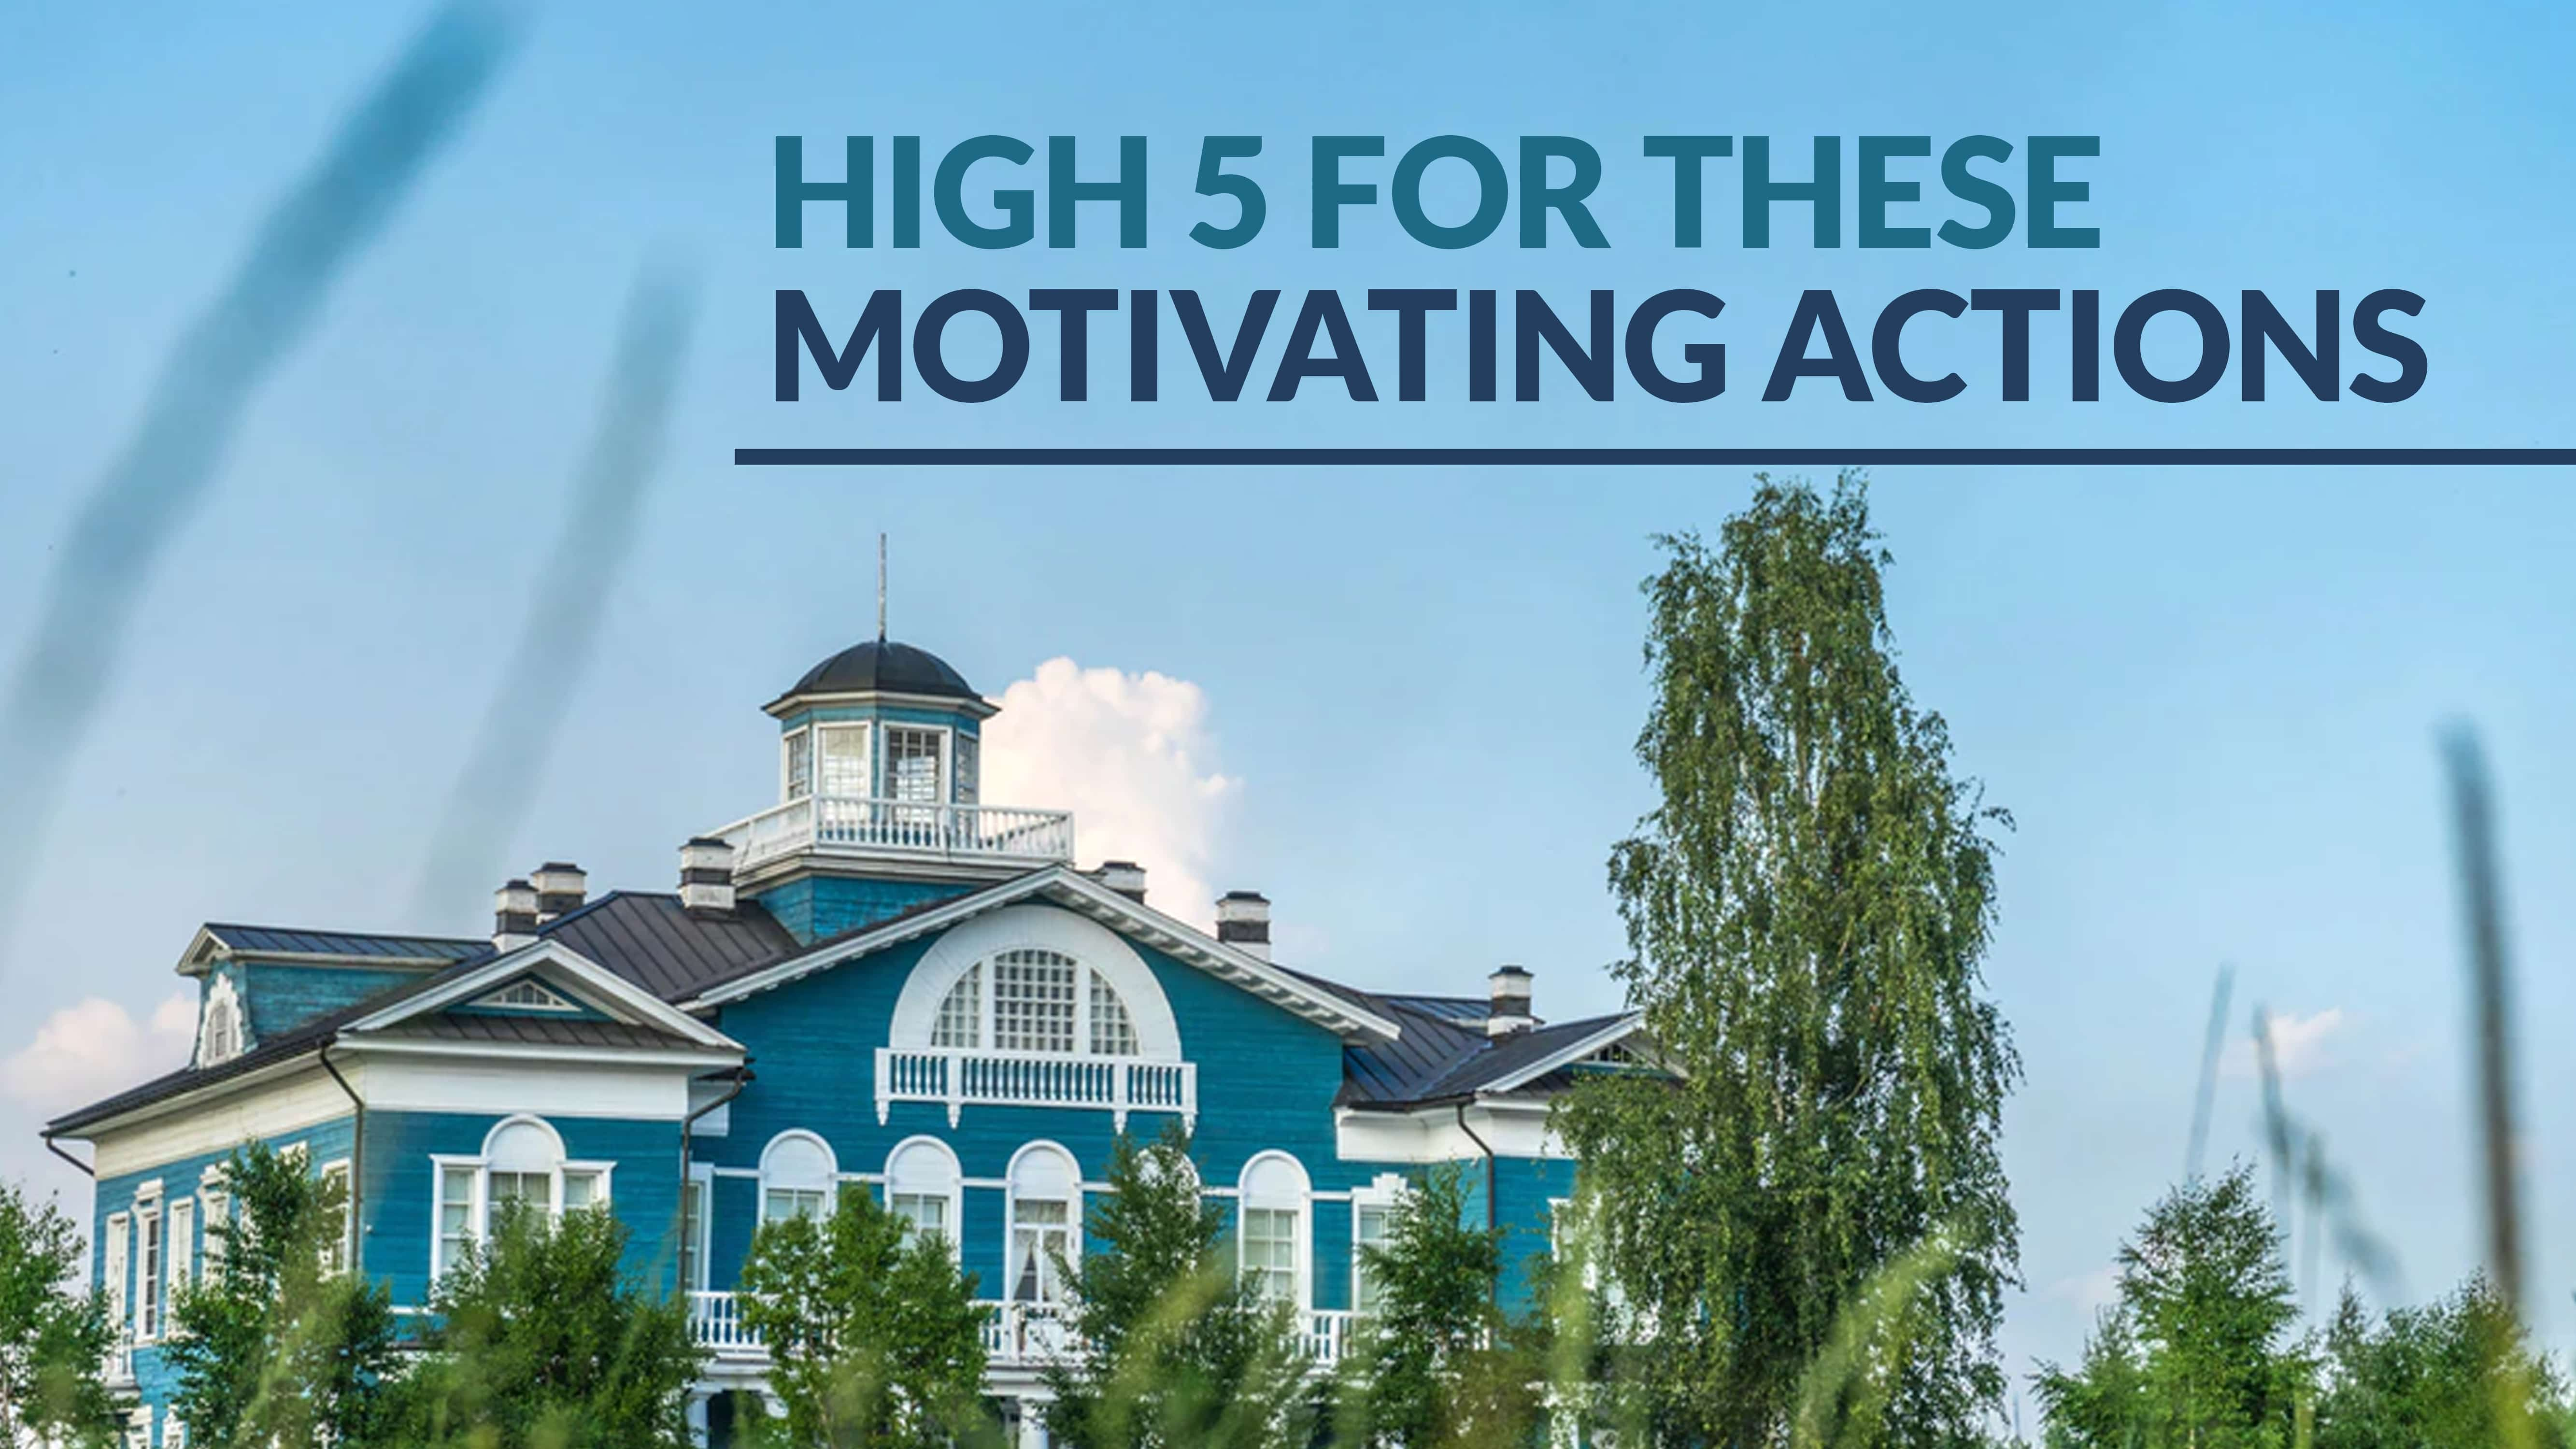 High 5 for these motivating actions